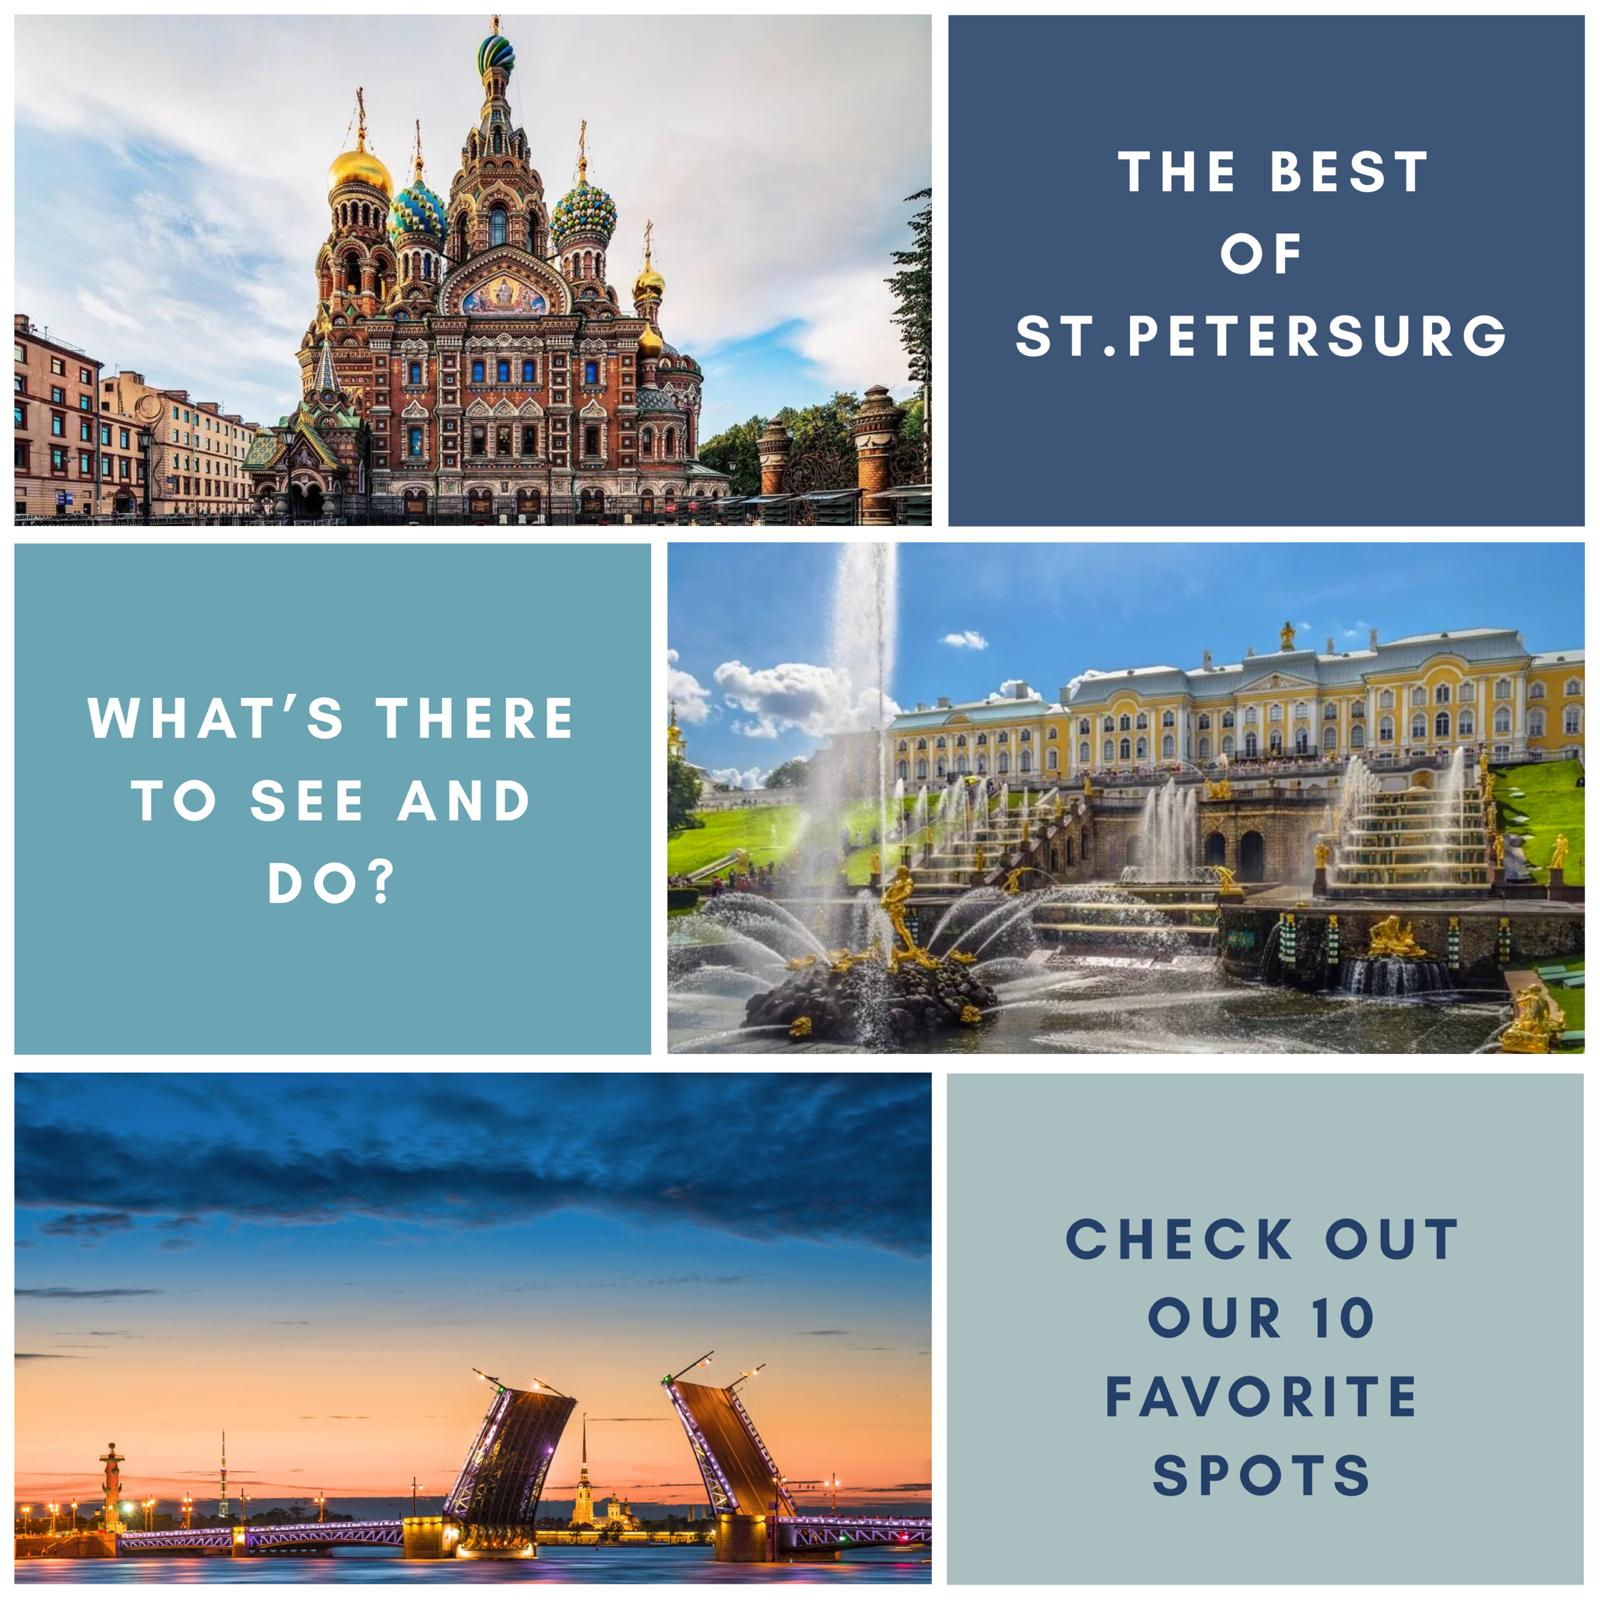 "Image with the following text: ""The Best of St. Petersburg"" ""What's there to see and do?"" ""Check out out 10 favorite spots"" and includes photos of the Church on the Spilled Blood, Peterhoff Fountain Park's grand cascade, and an image of a bridge on the Neva River opening during sunset."